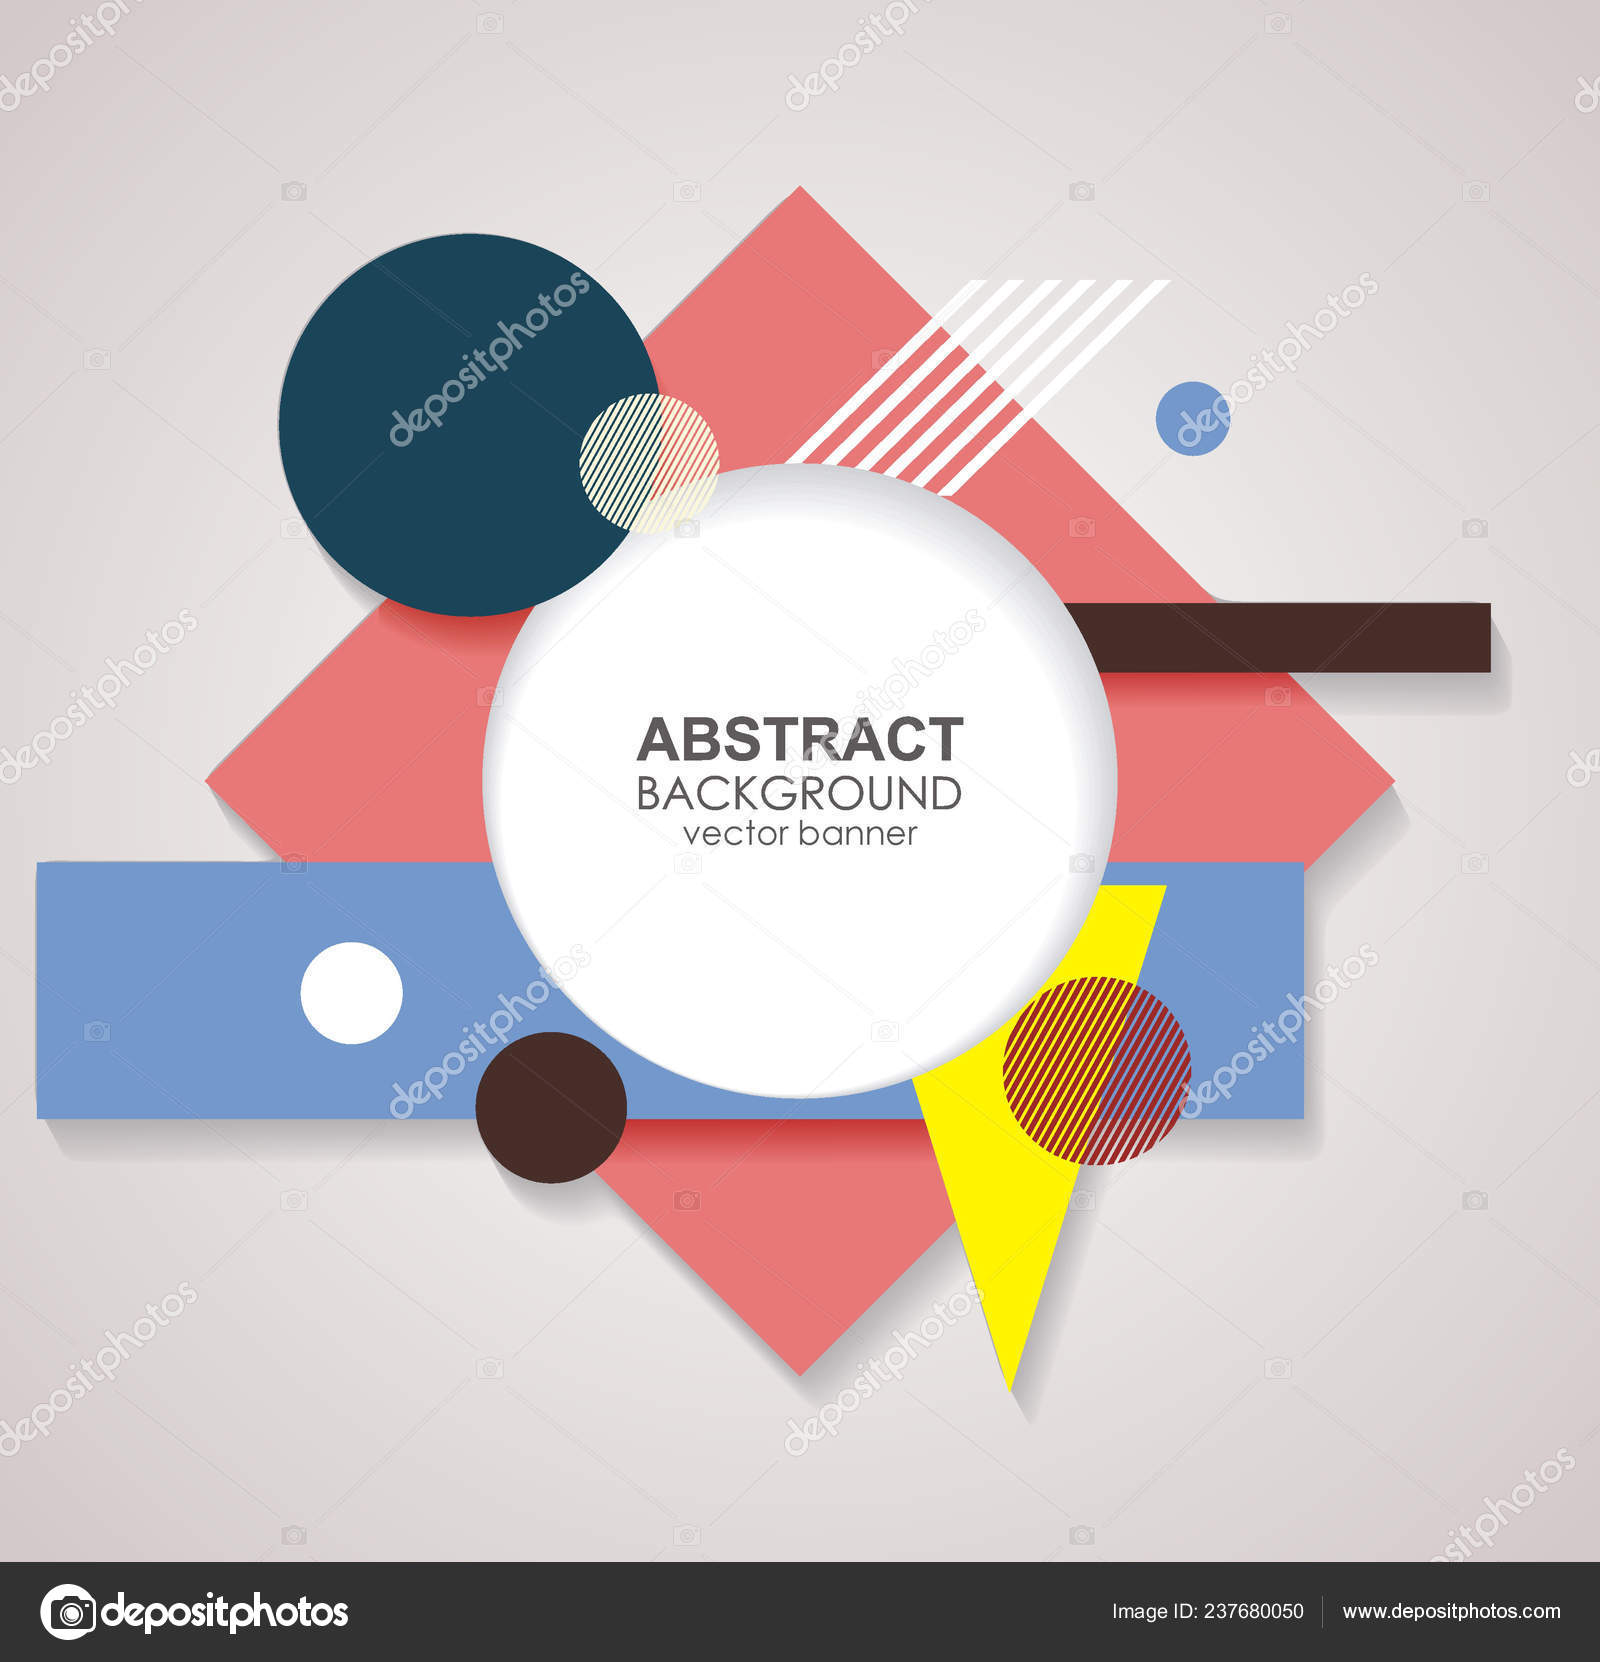 Abstract Geometric Shapes Vector Background — Stock Vector